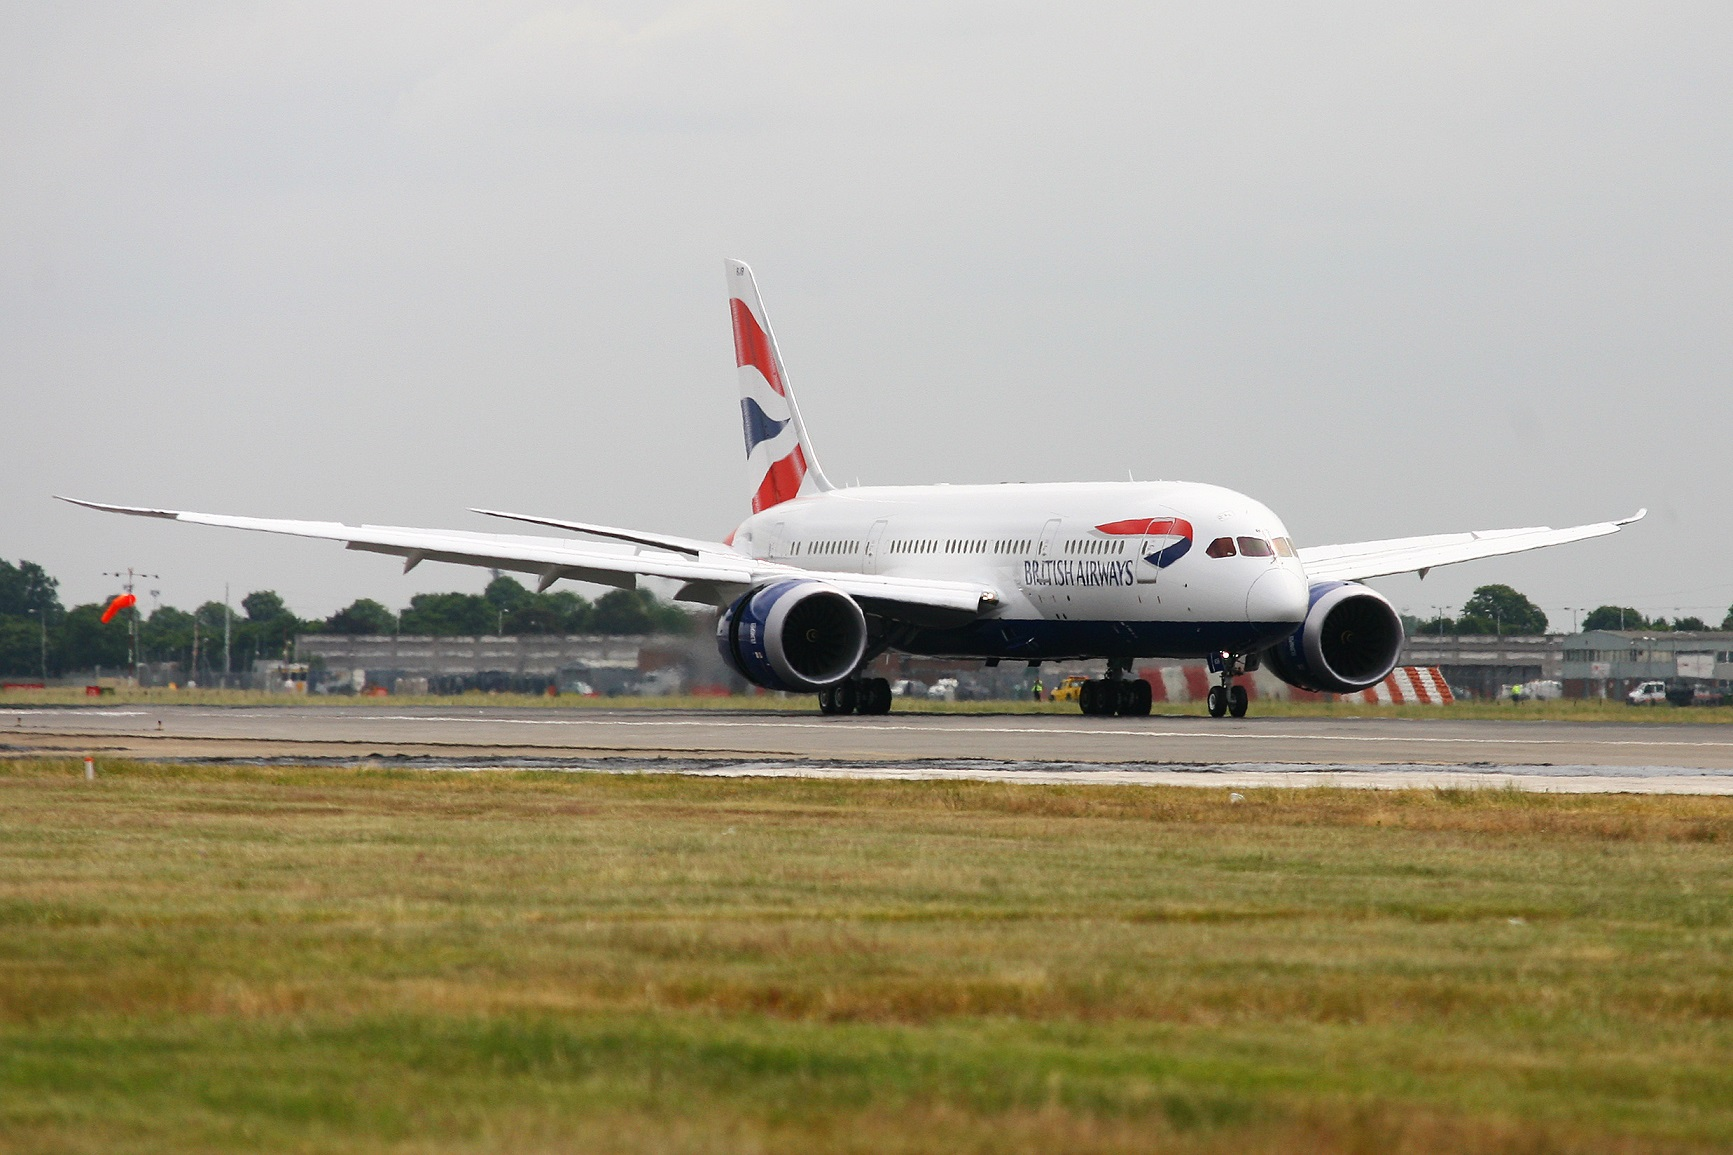 Boeing 787 Dreamliner Zdroj: British Airways